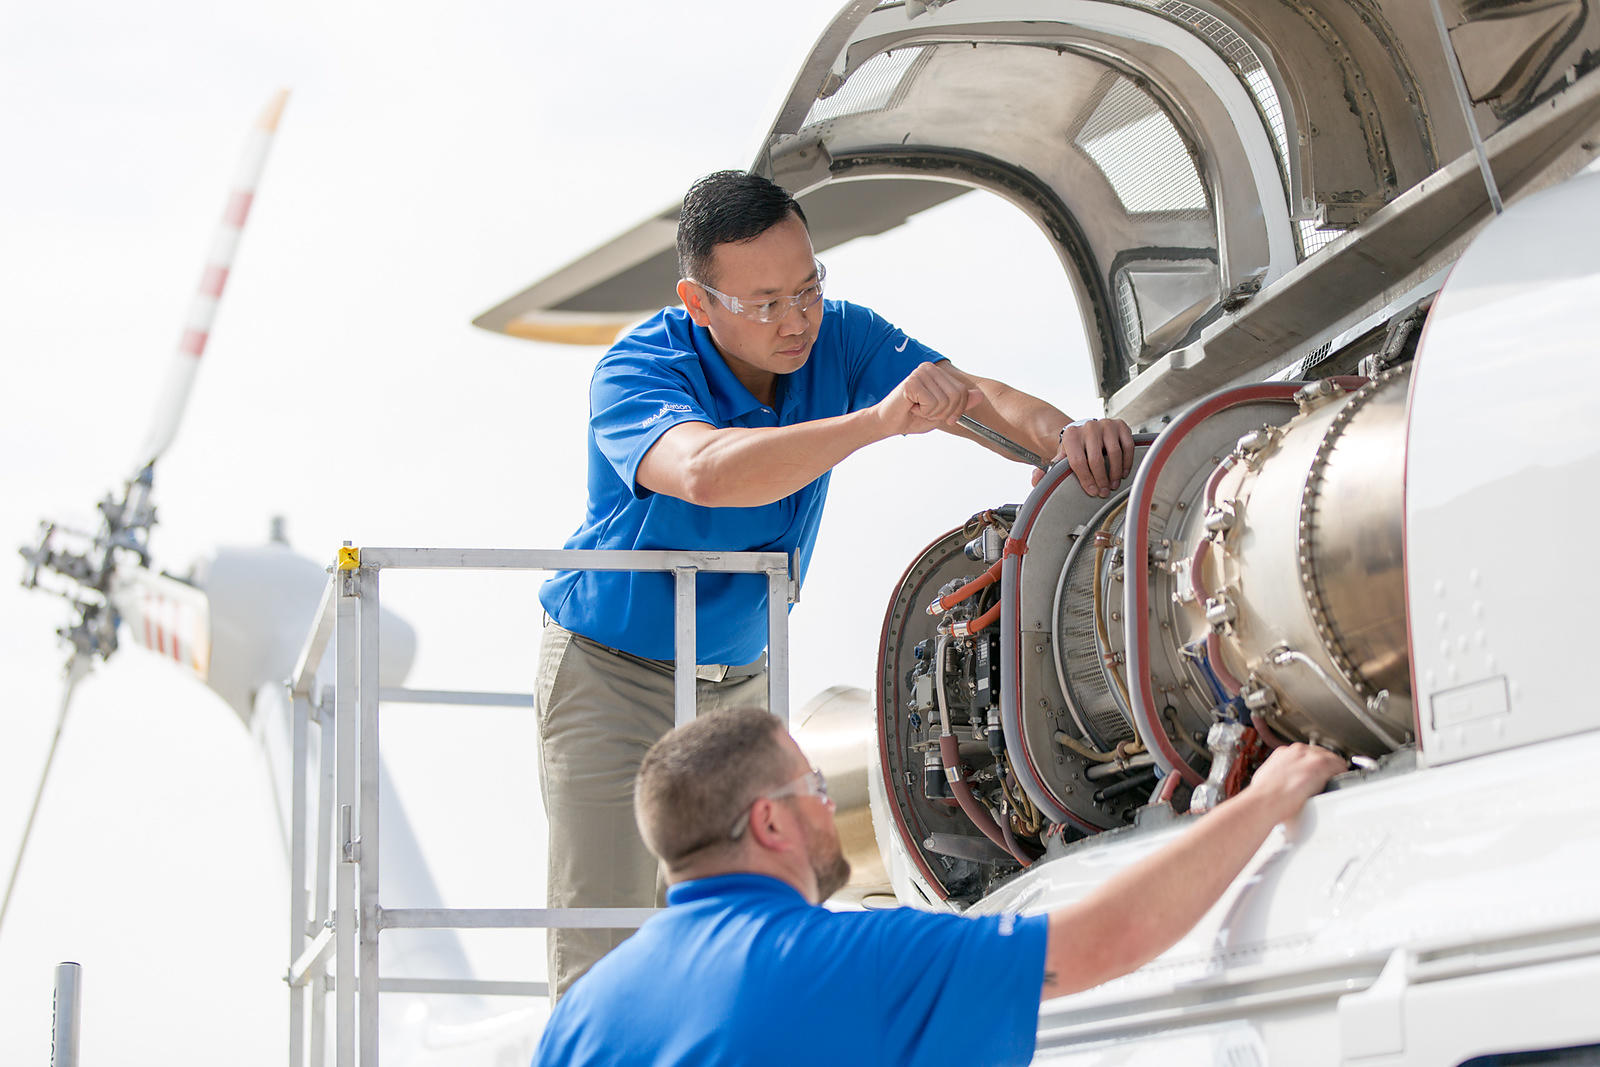 Dallas-commercial-aviation-photographer-Mark-Alberts-02